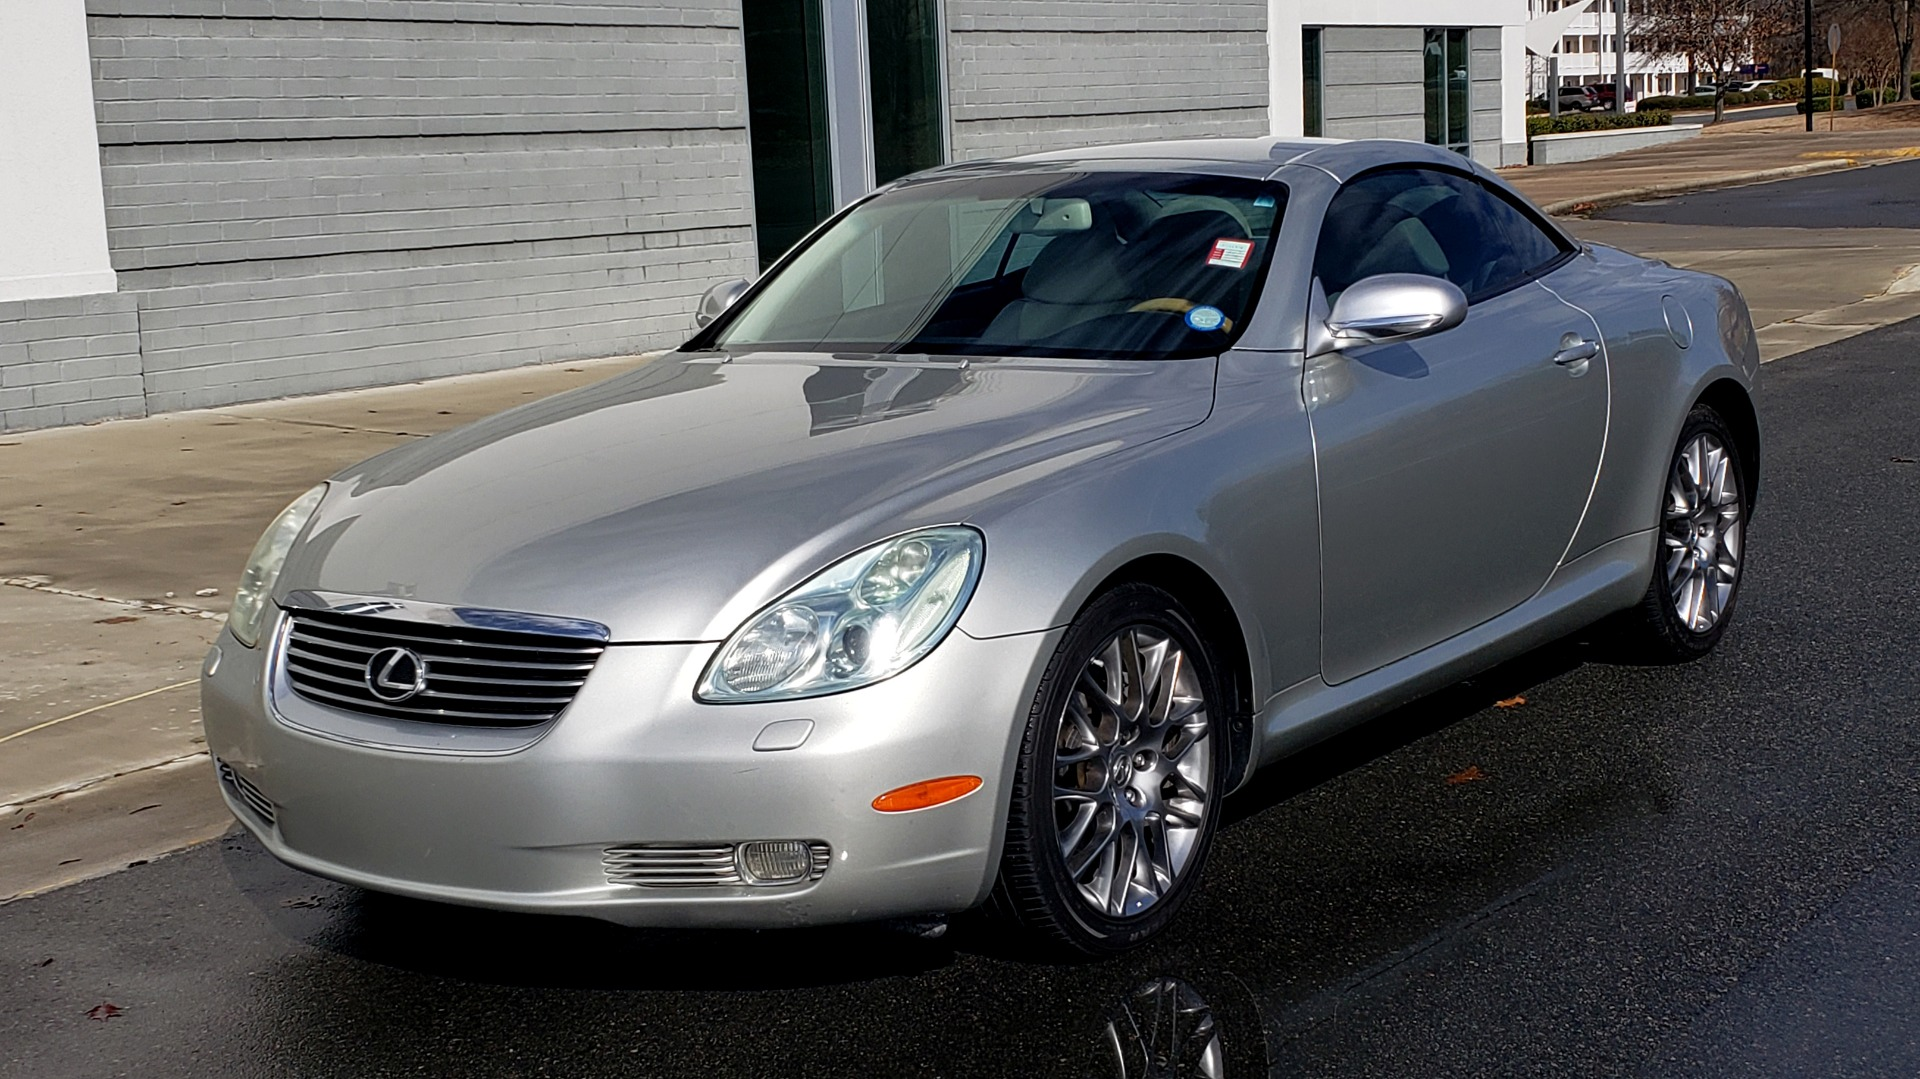 Used 2004 Lexus SC 430 CONVERTIBLE / 4.3L V8 / 5-SPD AUTO / MARK LEVINSON / 18IN WHEELS for sale $14,995 at Formula Imports in Charlotte NC 28227 2